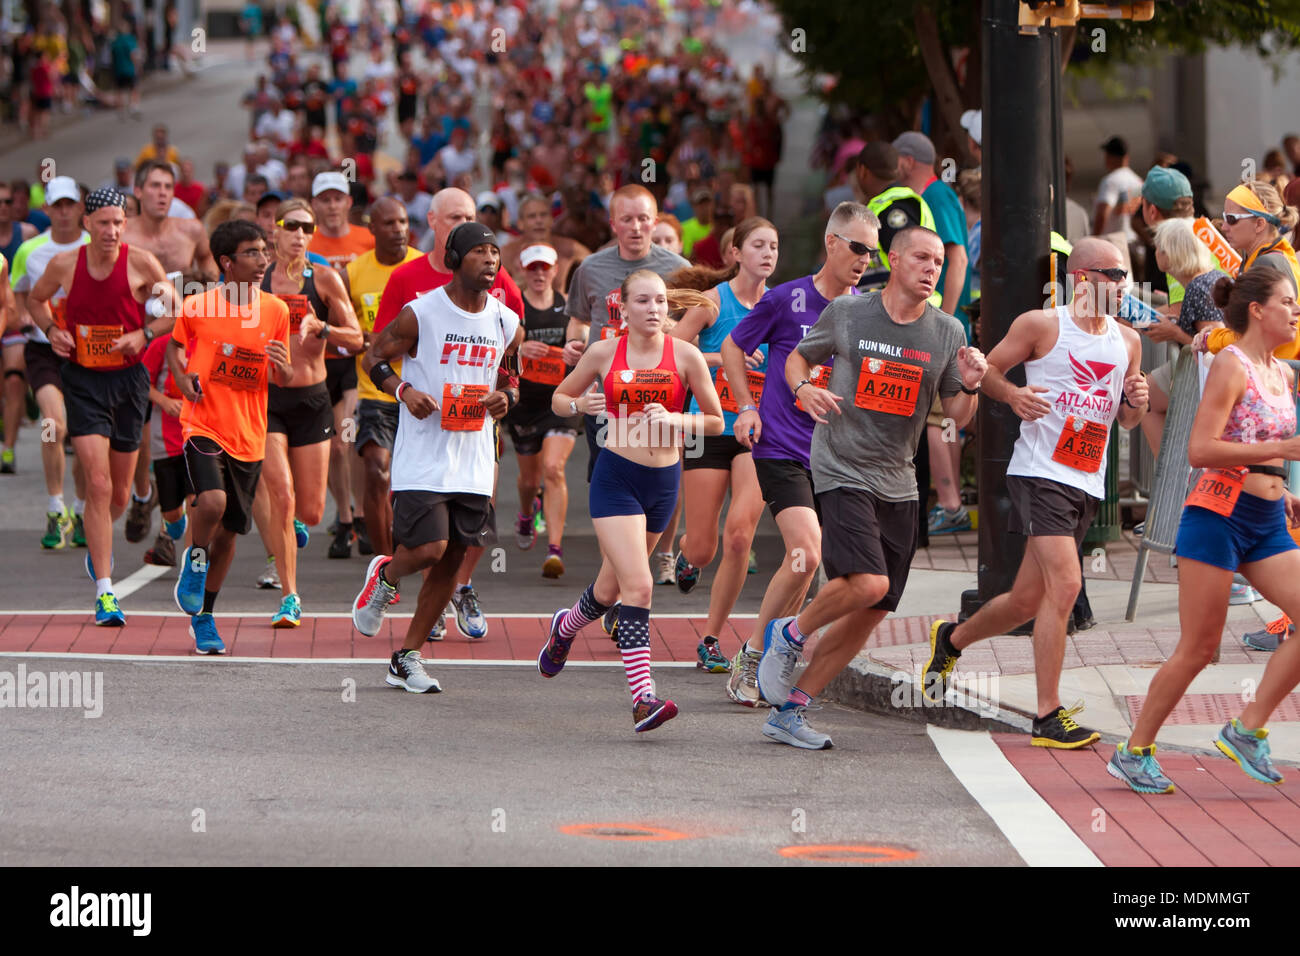 Thousands of runners run down Peachtree Street on their way to the finish line of the Peachtree Road Race on July 4, 2014 in Atlanta, GA. - Stock Image